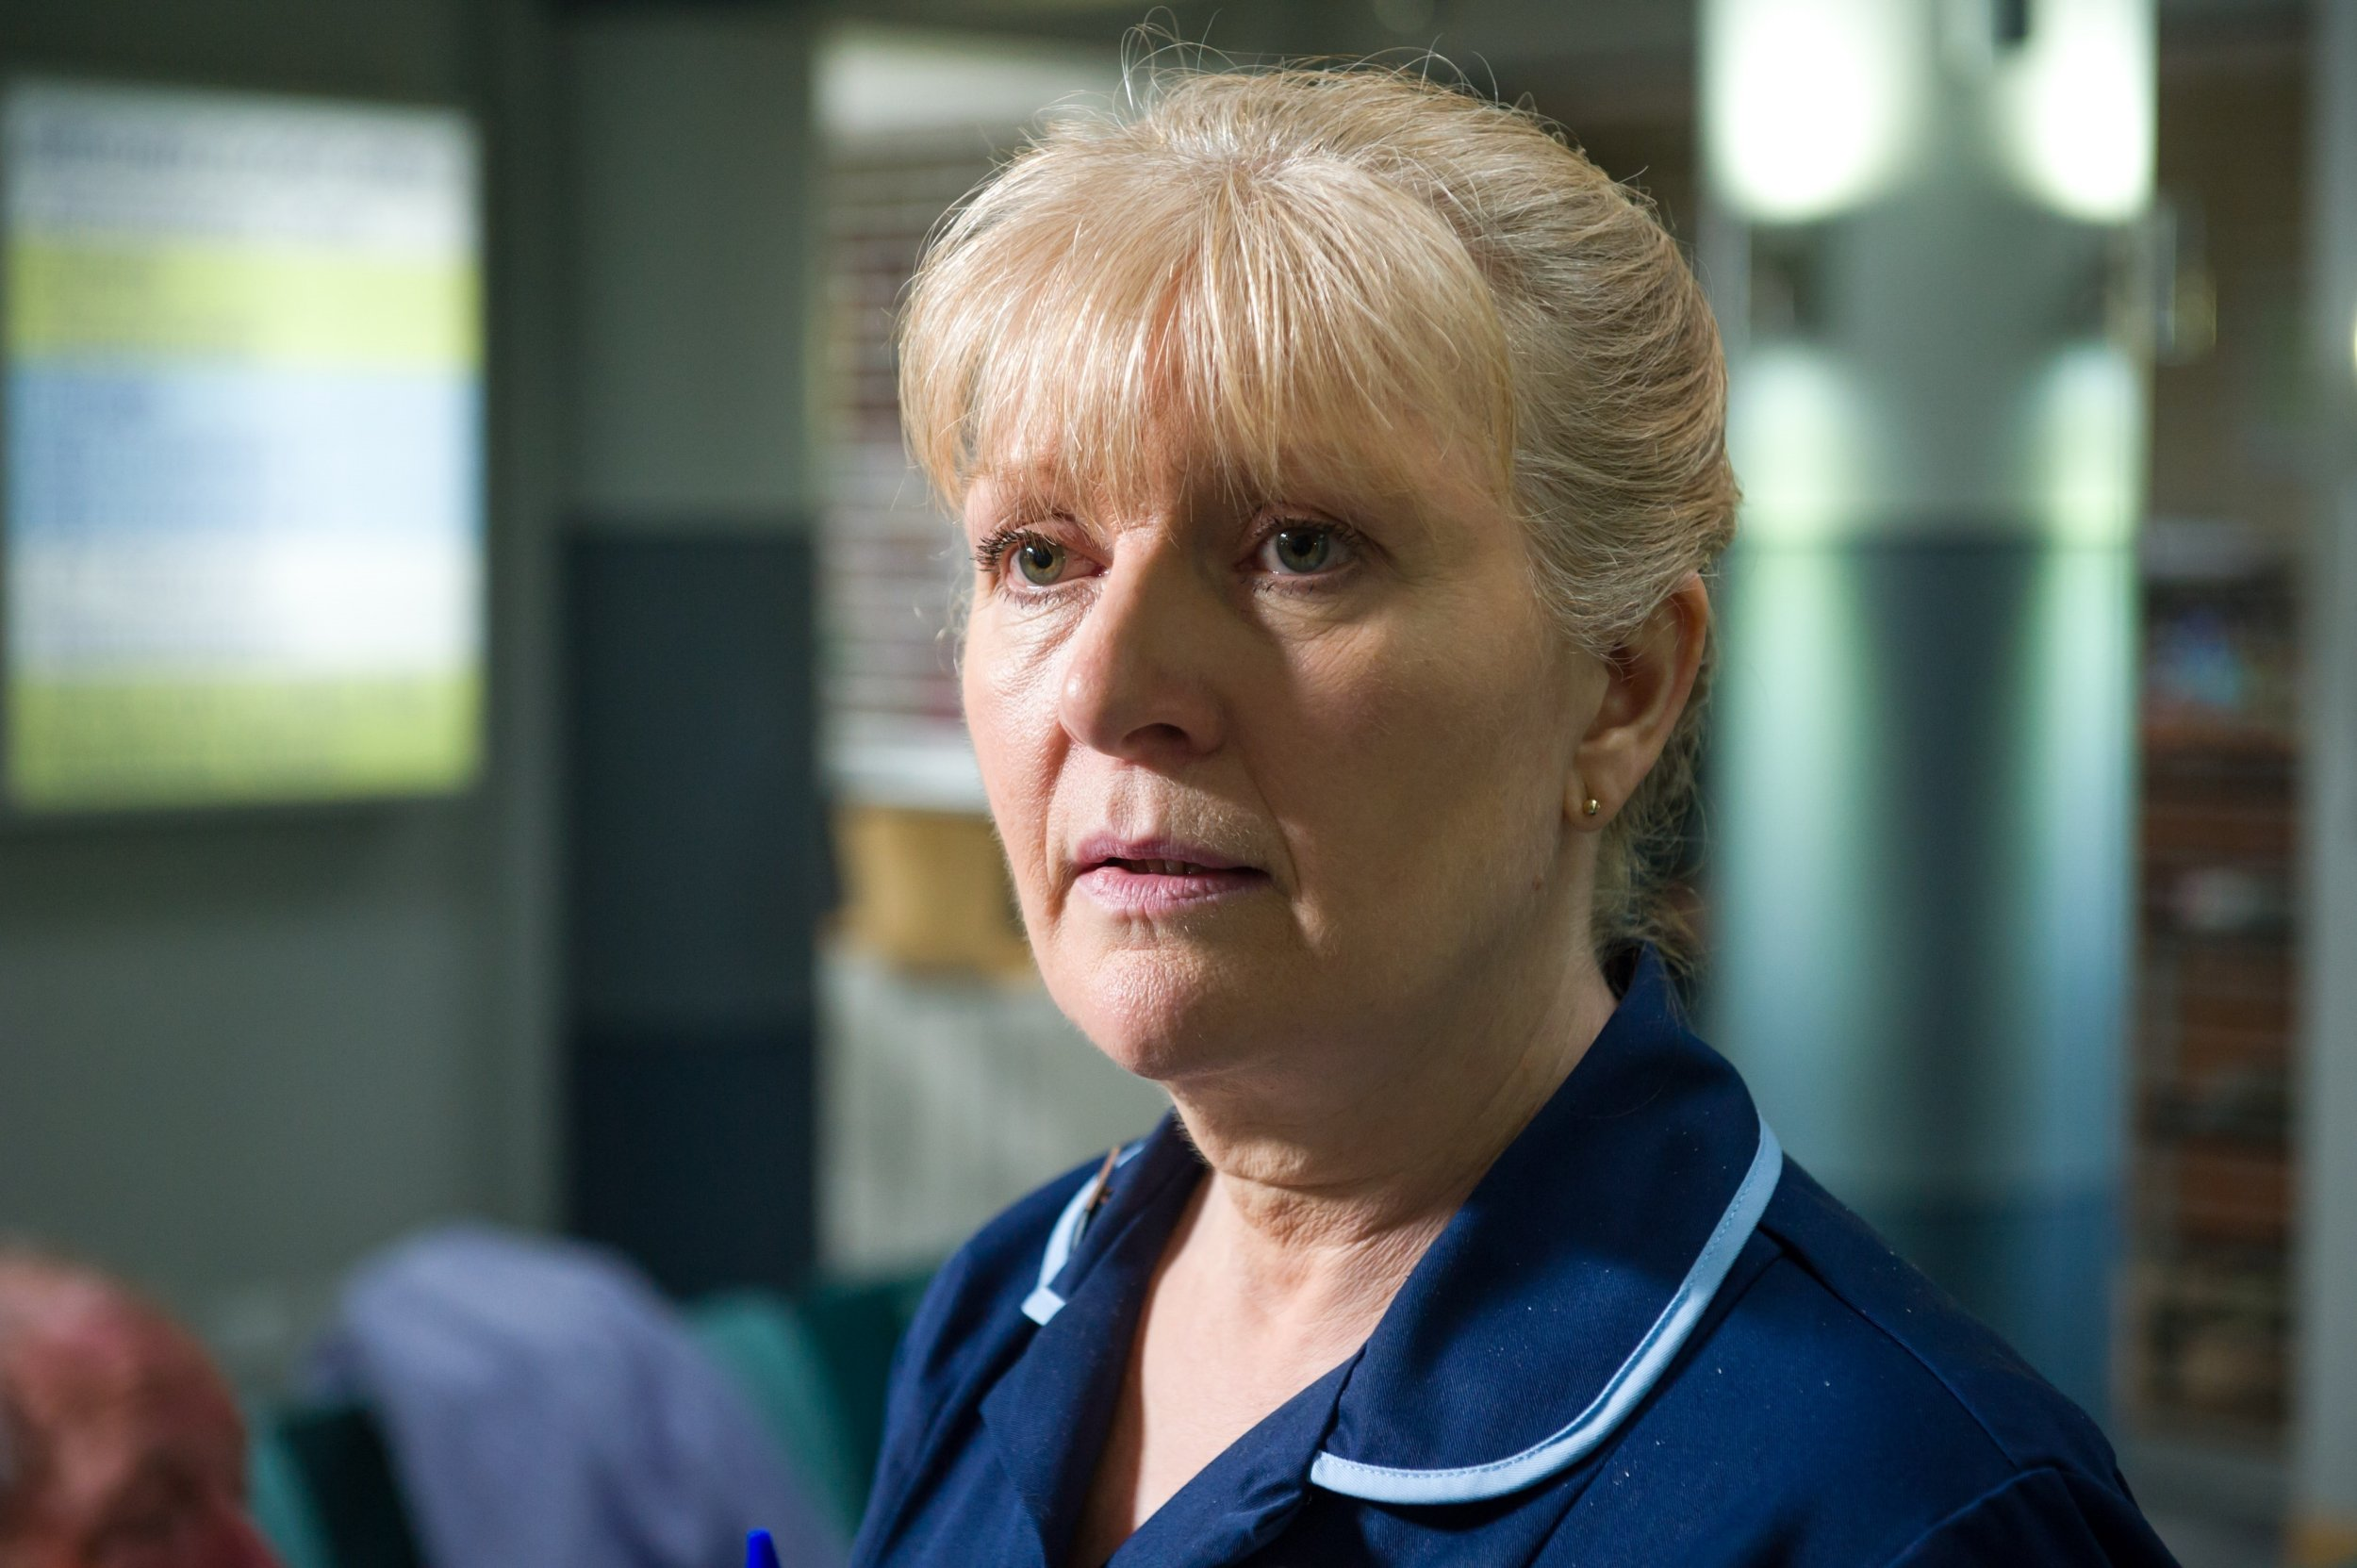 Casualty reveals hugely ambitious end of series plans